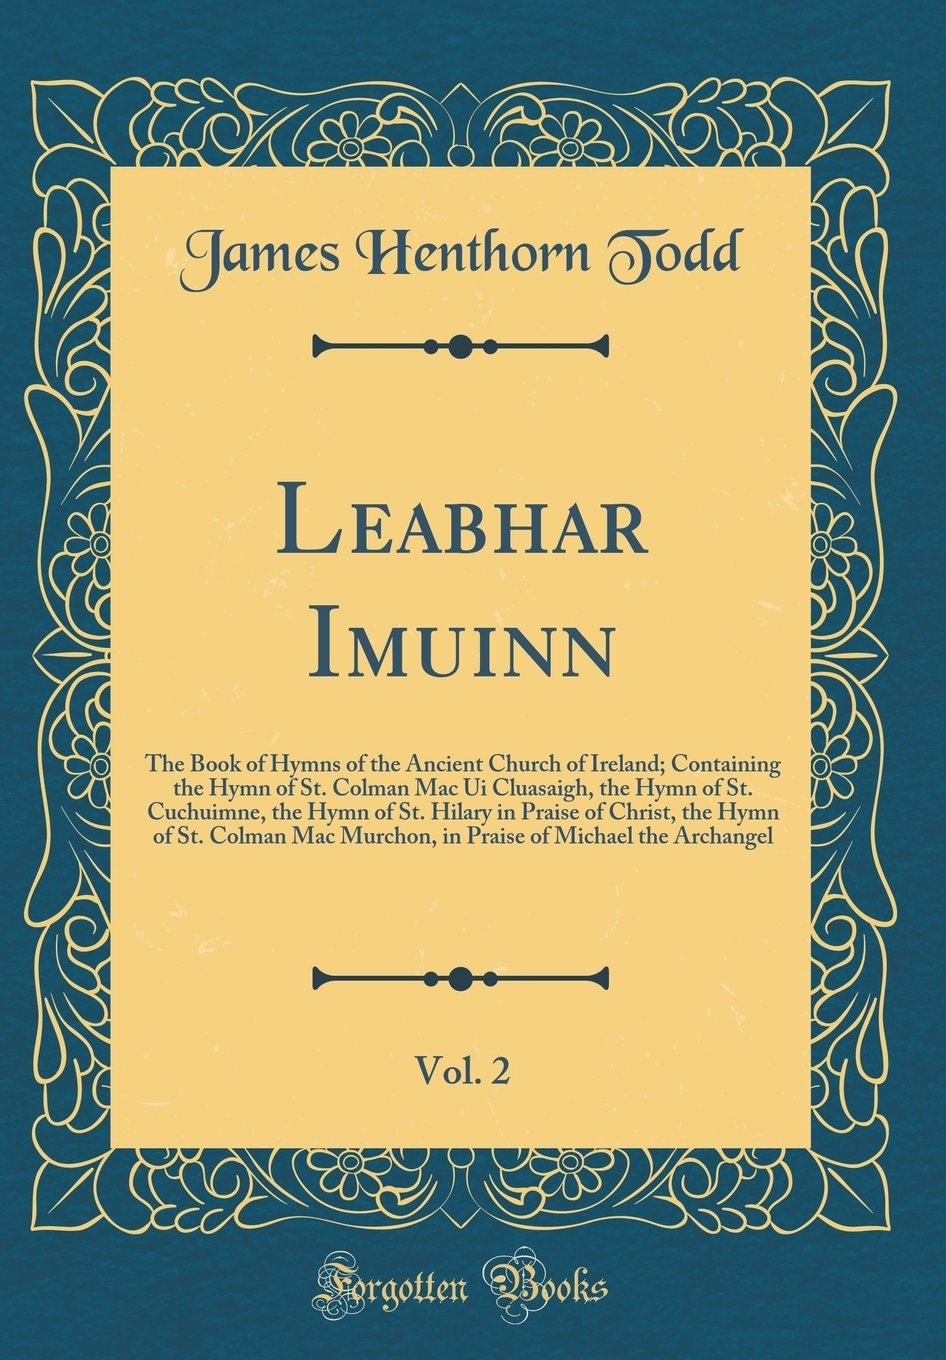 Leabhar Imuinn, Vol. 2: The Book of Hymns of the Ancient Church of Ireland; Containing the Hymn of St. Colman Mac Ui Cluasaigh, the Hymn of St. ... St. Colman Mac Murchon, in Praise of Michael pdf